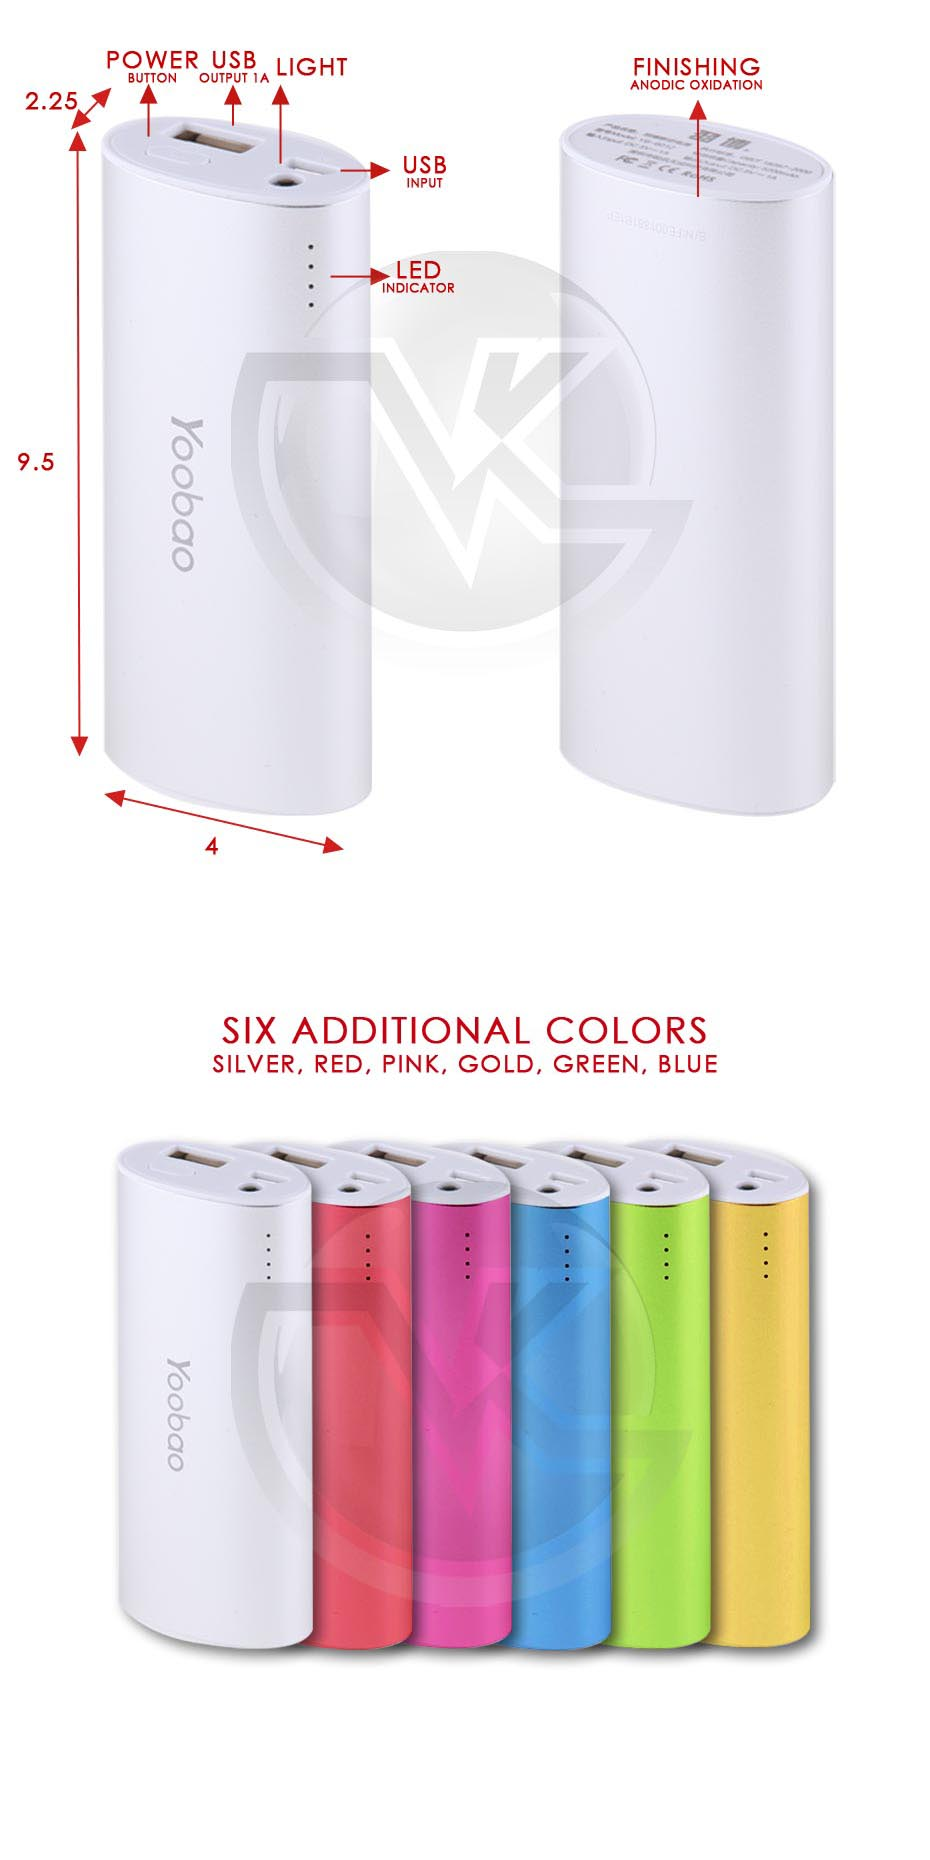 Powerbank Yoobao 5200mAh Magic Wand YB-6012 Overview